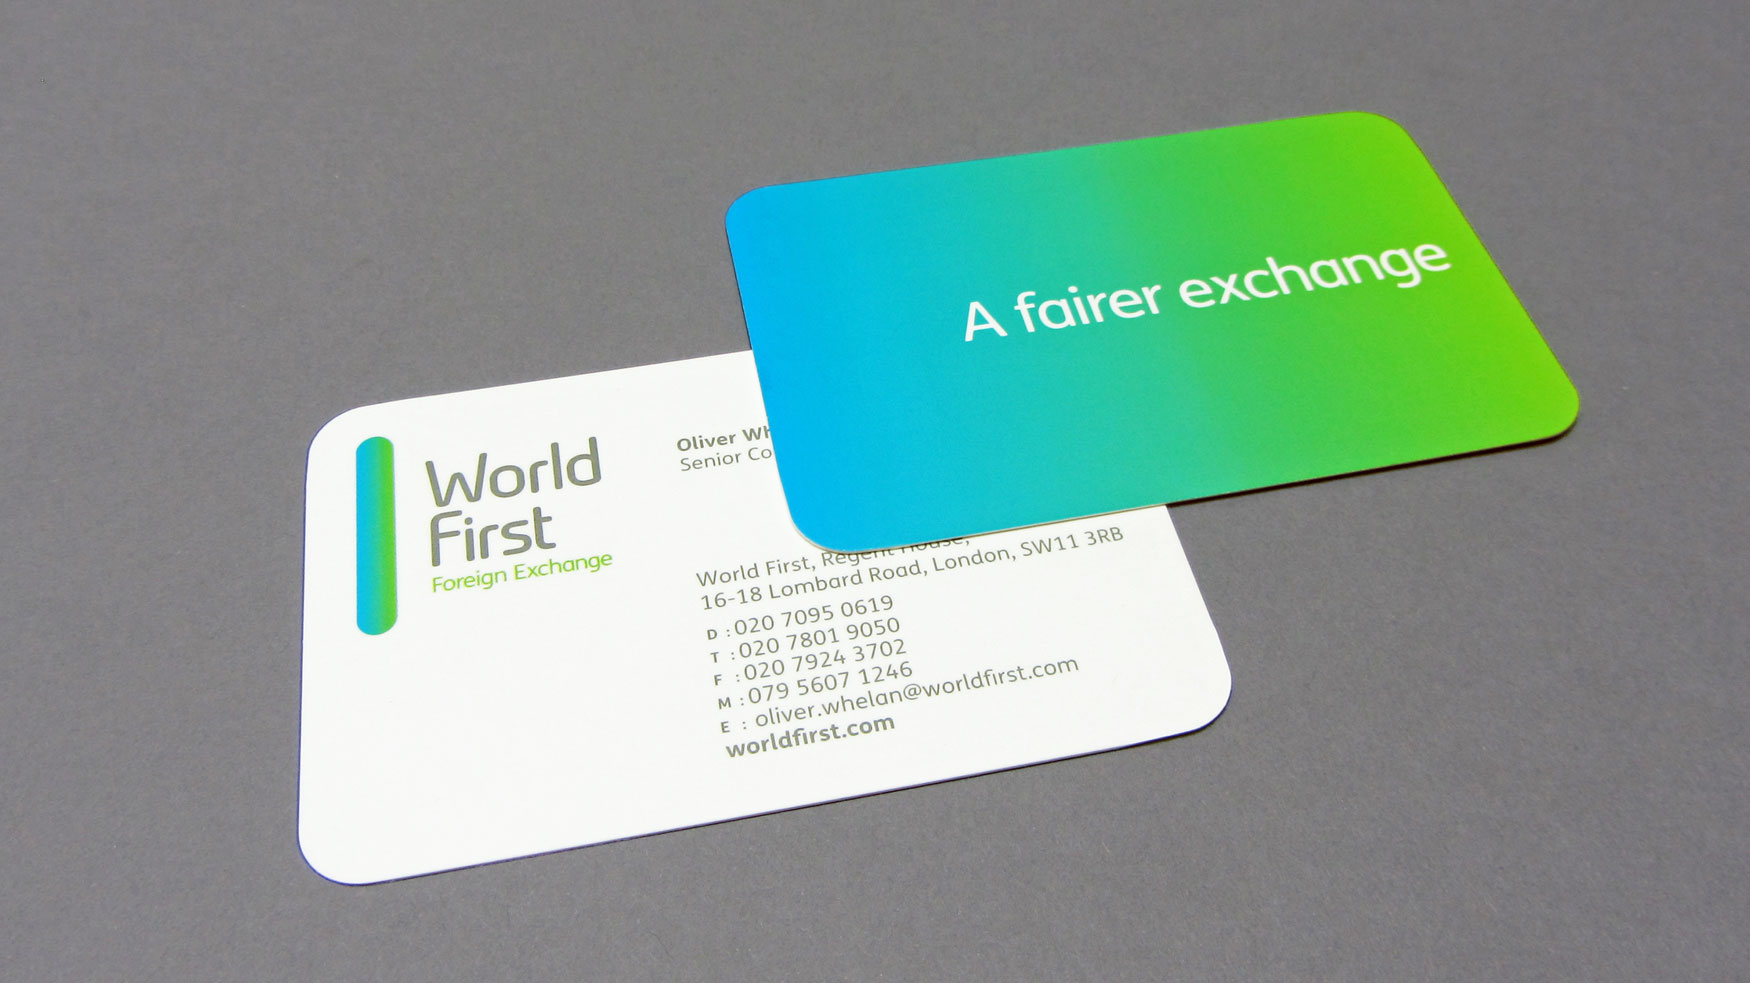 World first business card freestyle print london printers uk rounded corners business cards project description zoom move your mouse over image or click to enlarge colourmoves